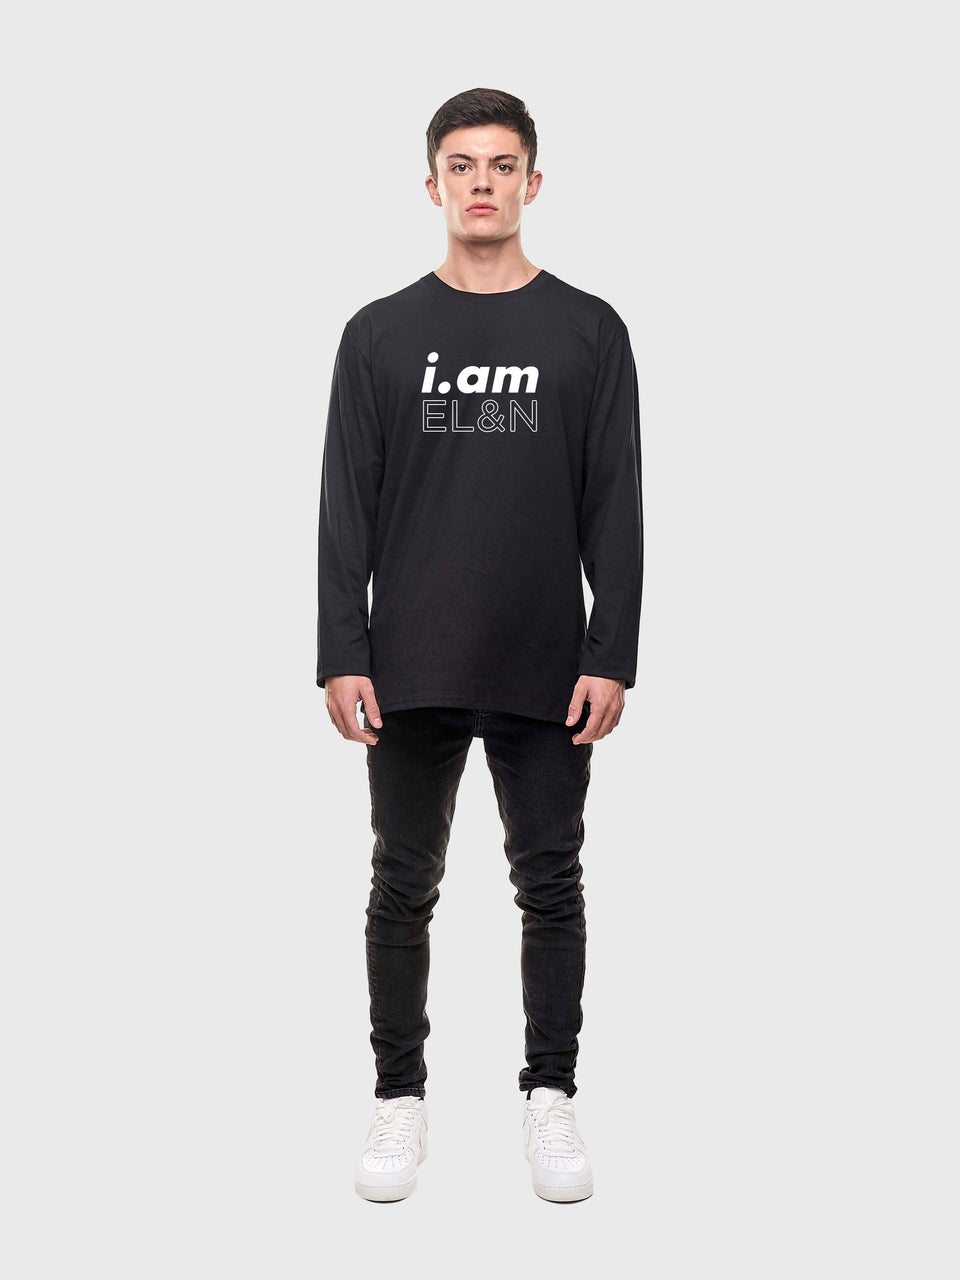 I.am EL&N - Black - Unisex long sleeve T